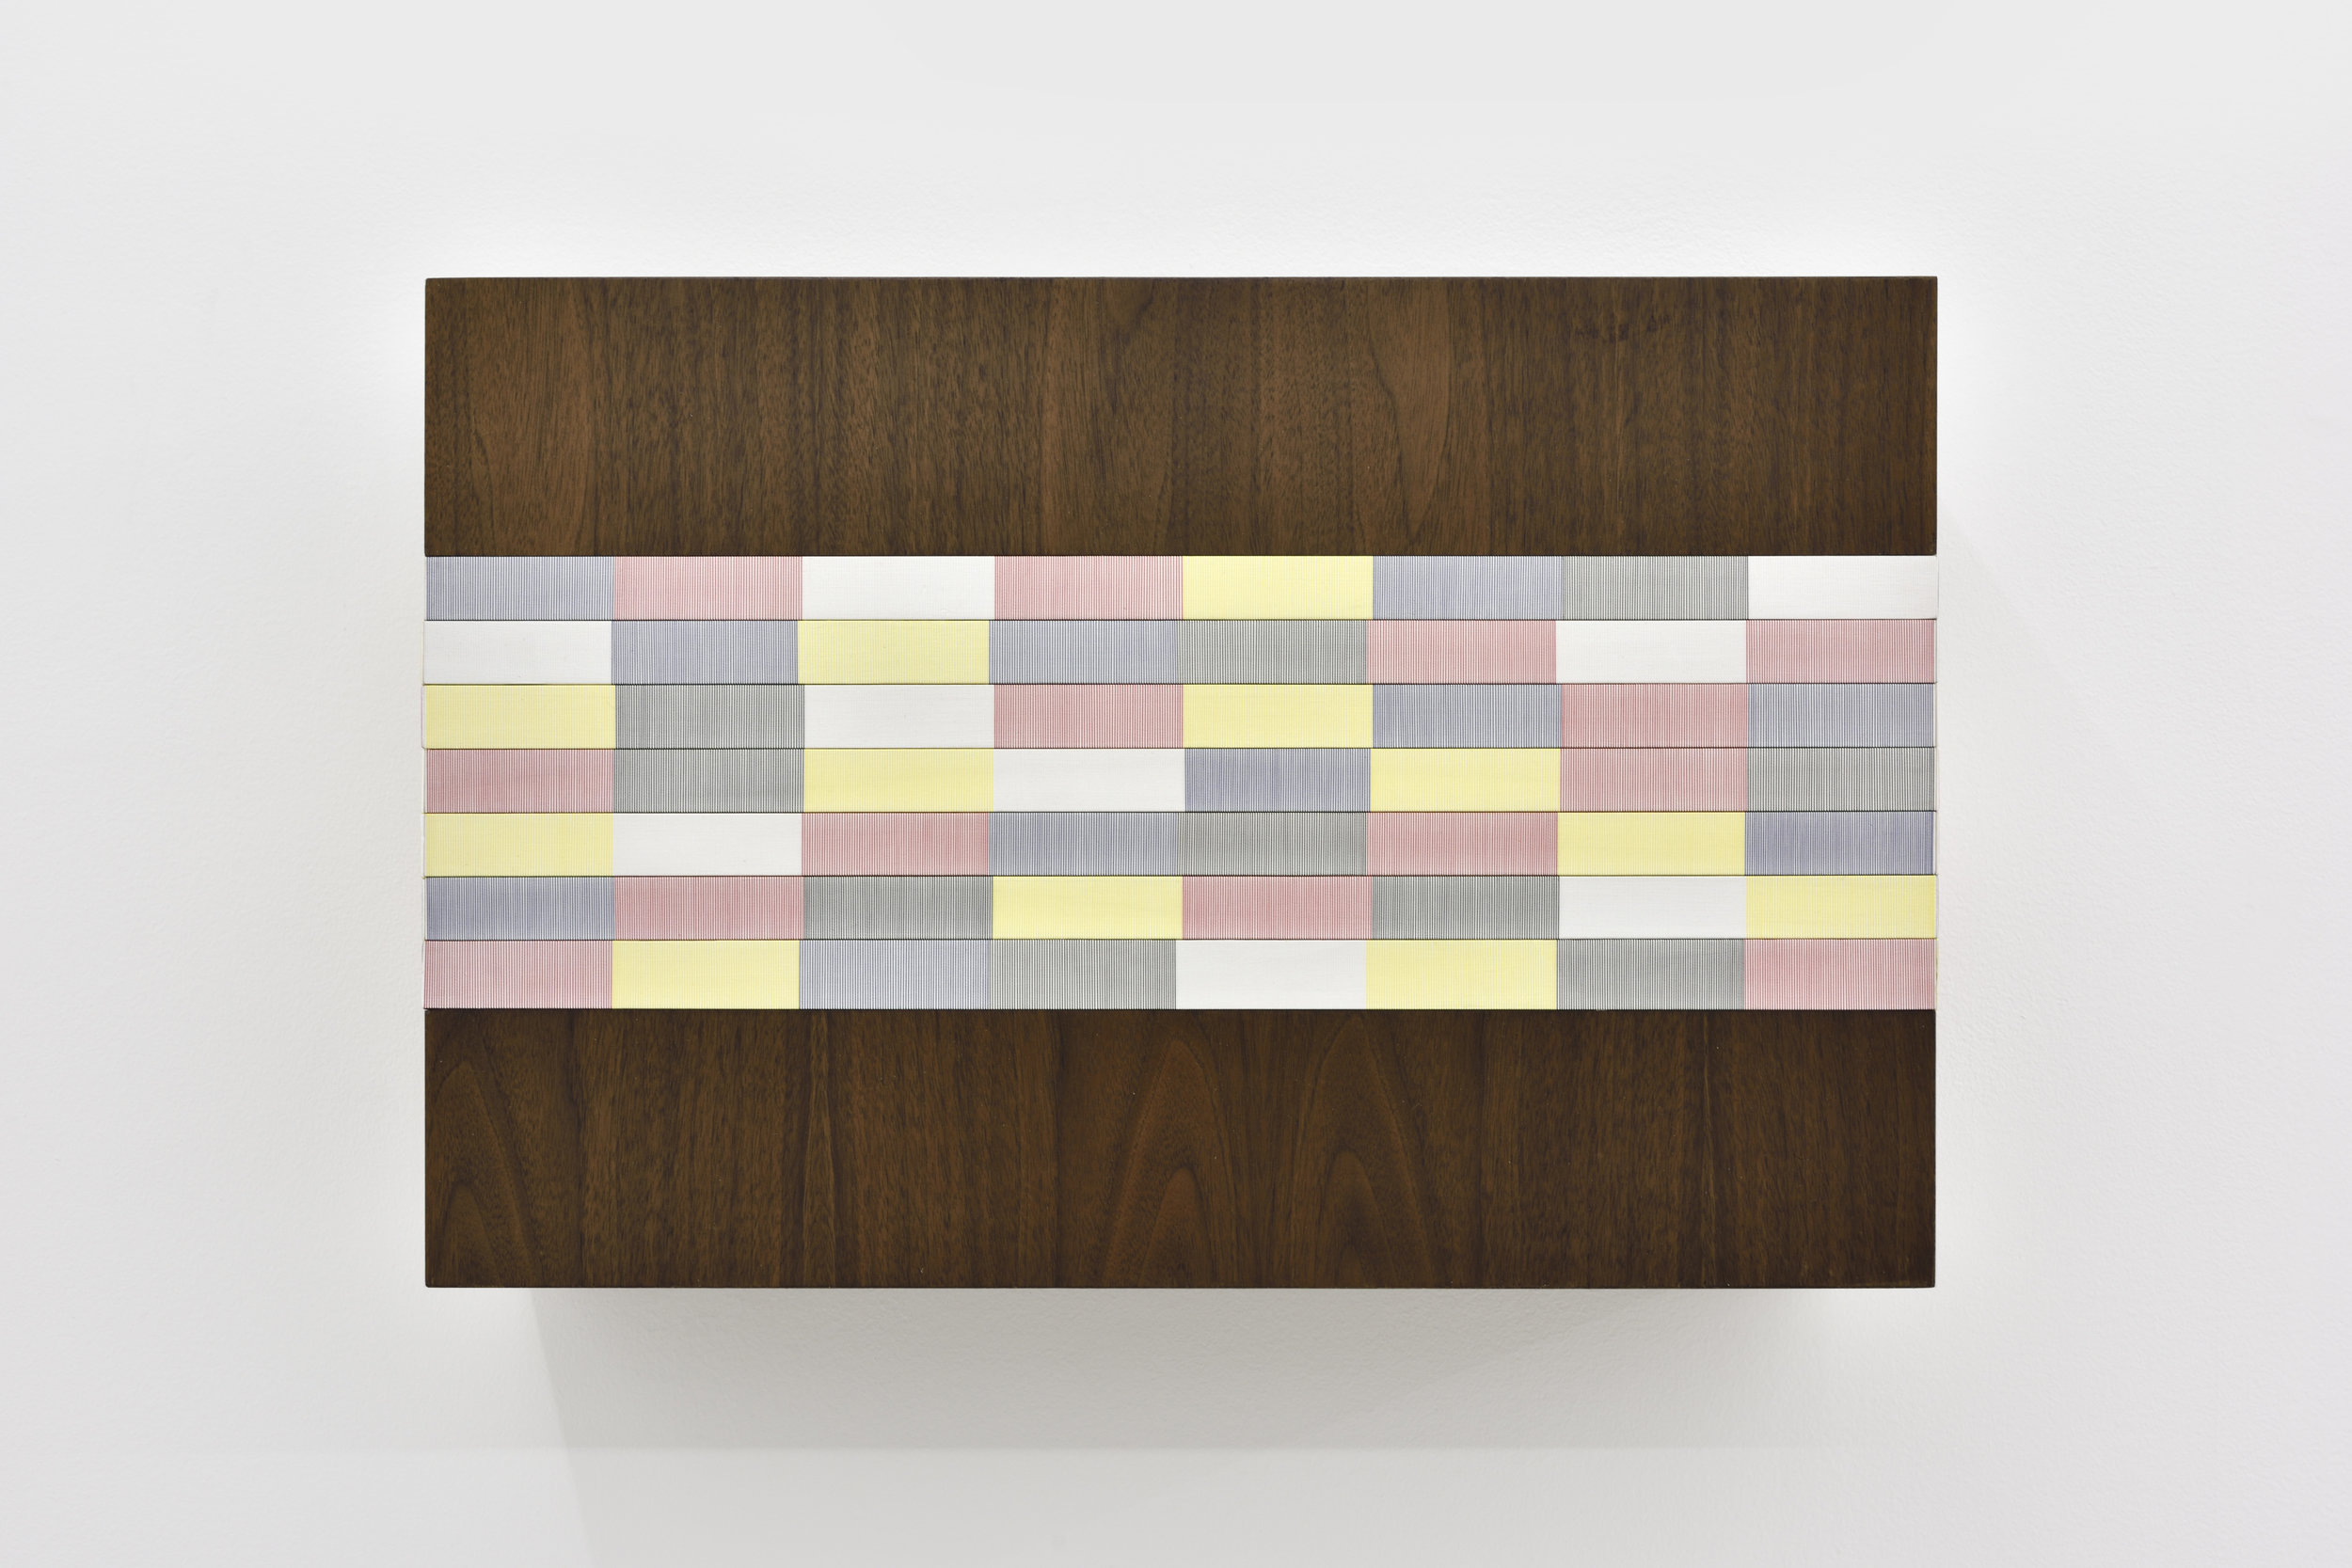 Untitled (Primary wall sculpture), 2016 oil, single-strand rayon thread and basswood on walnut 46 x 61 x 20 cm - 18 1/8 x 24 1/32 x 7 7/8 inches